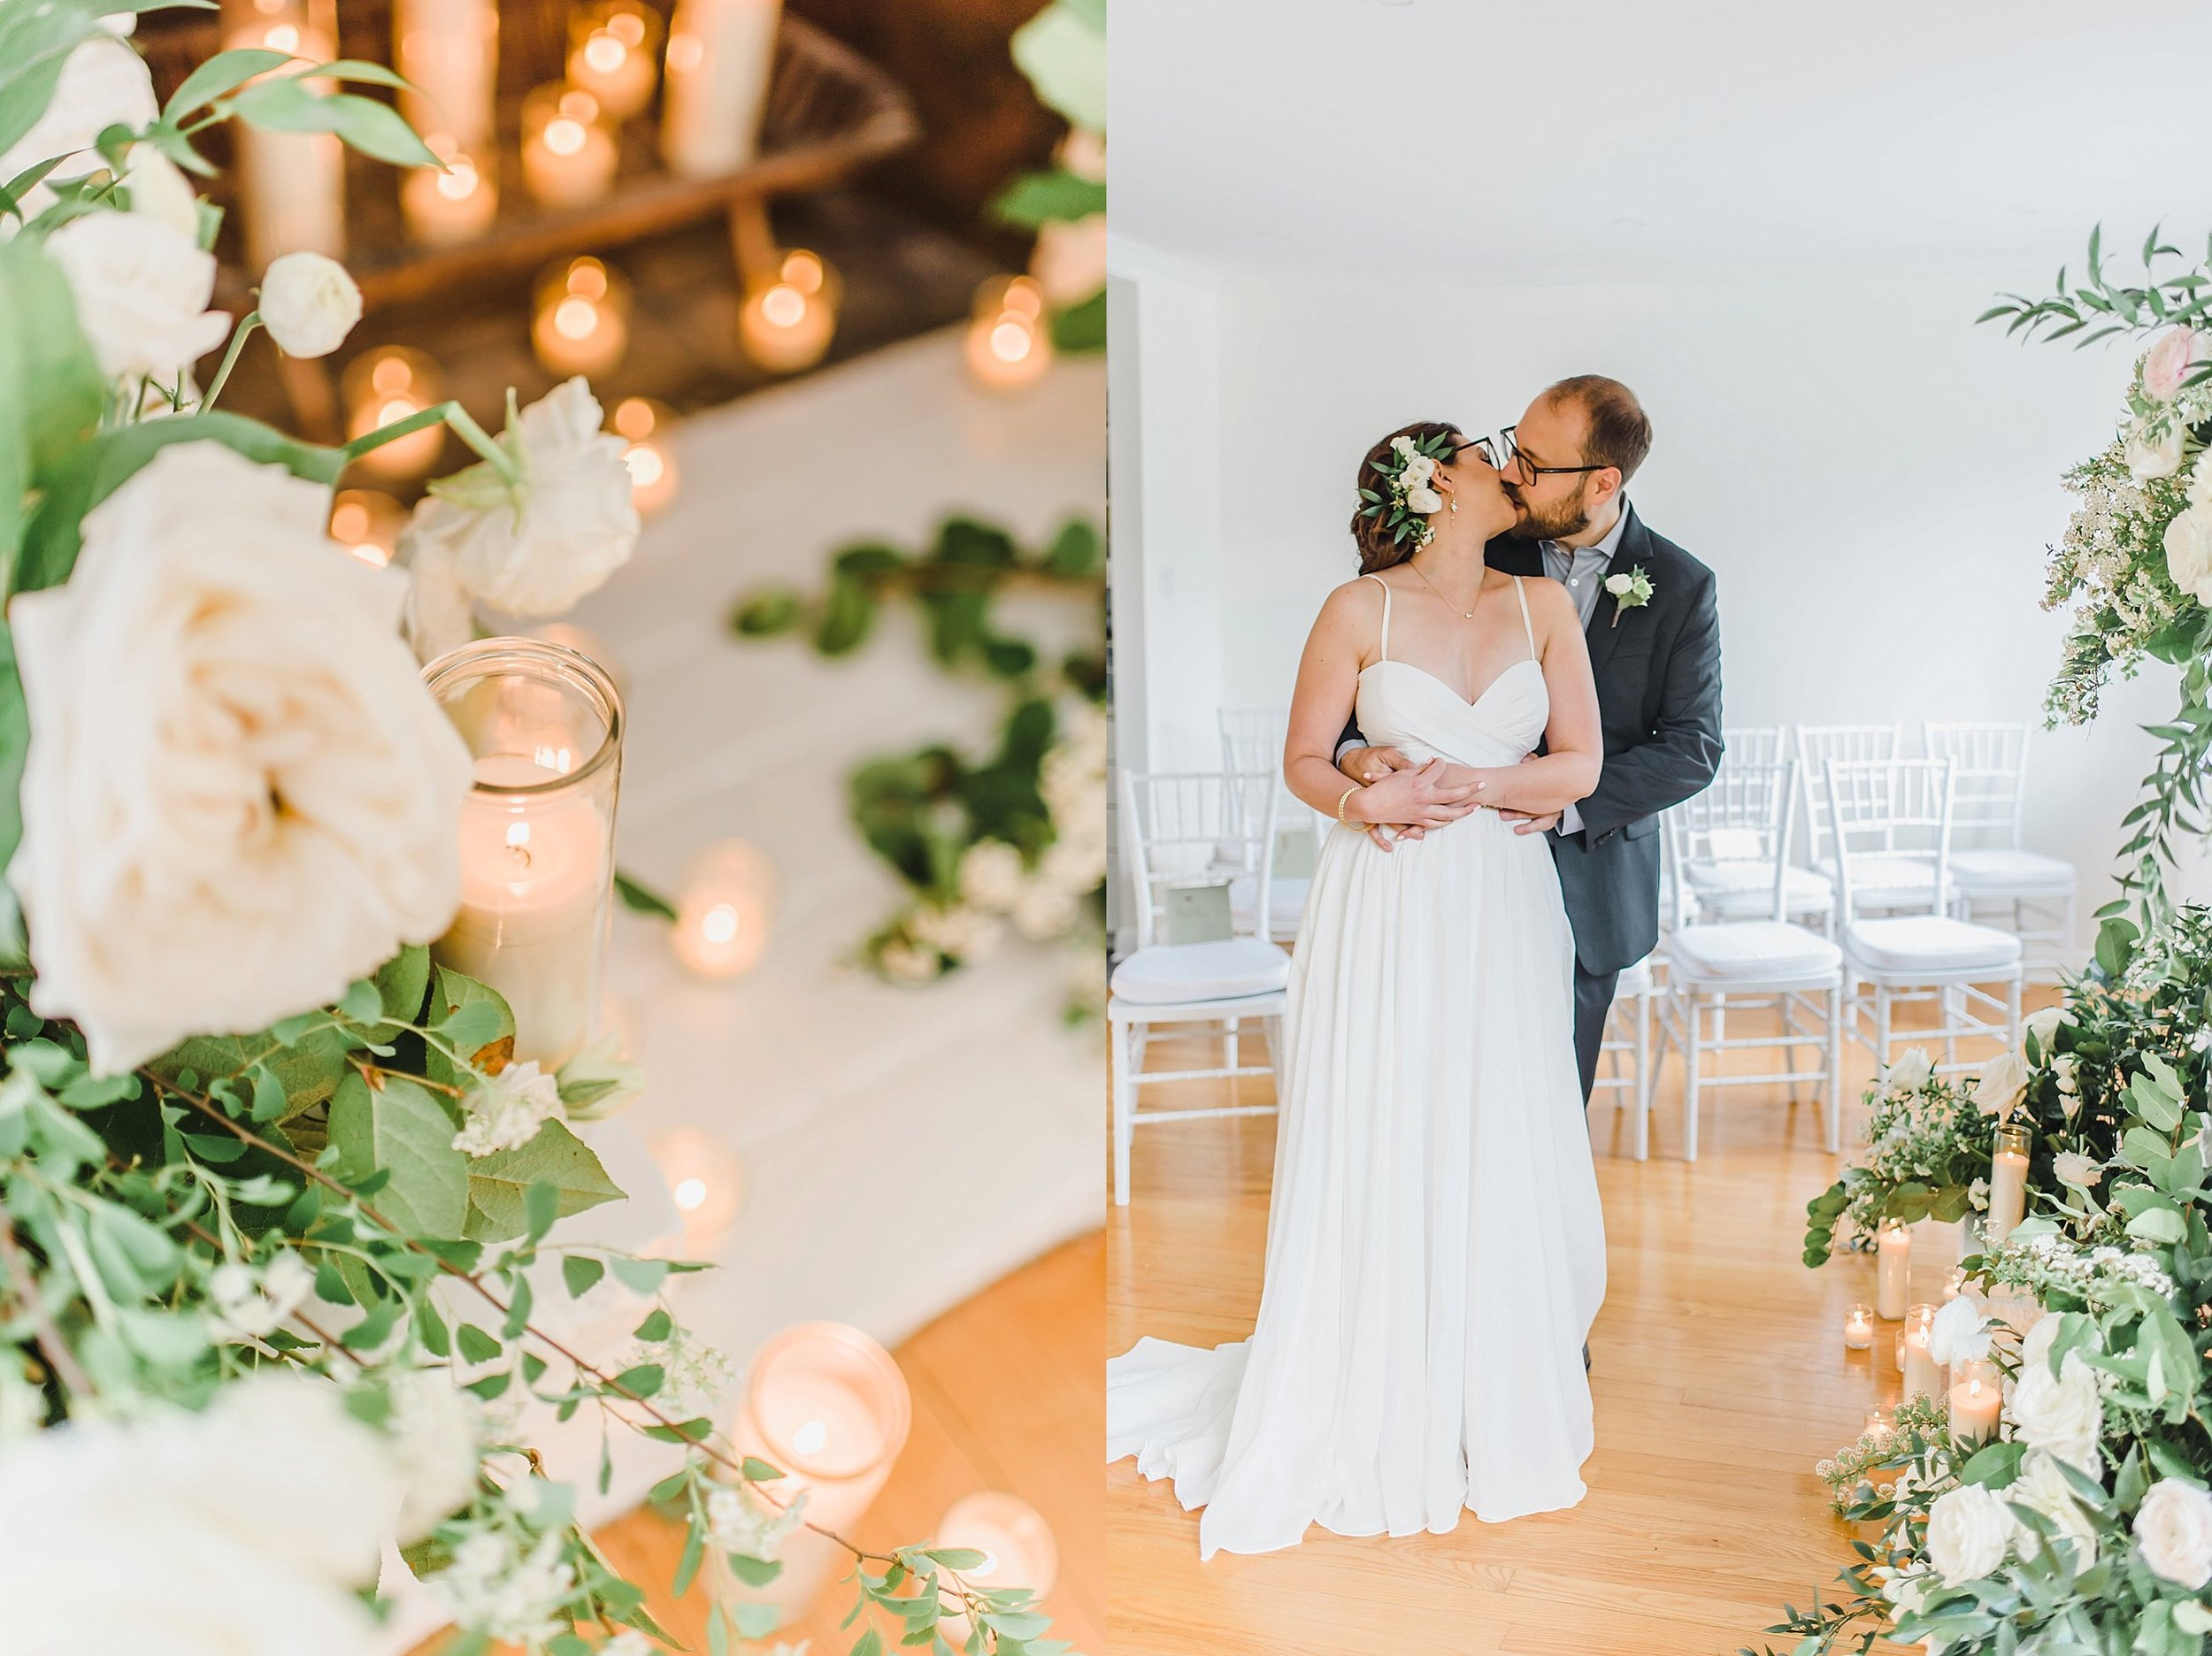 light airy indie fine art ottawa wedding photographer | Ali and Batoul Photography_1690.jpg